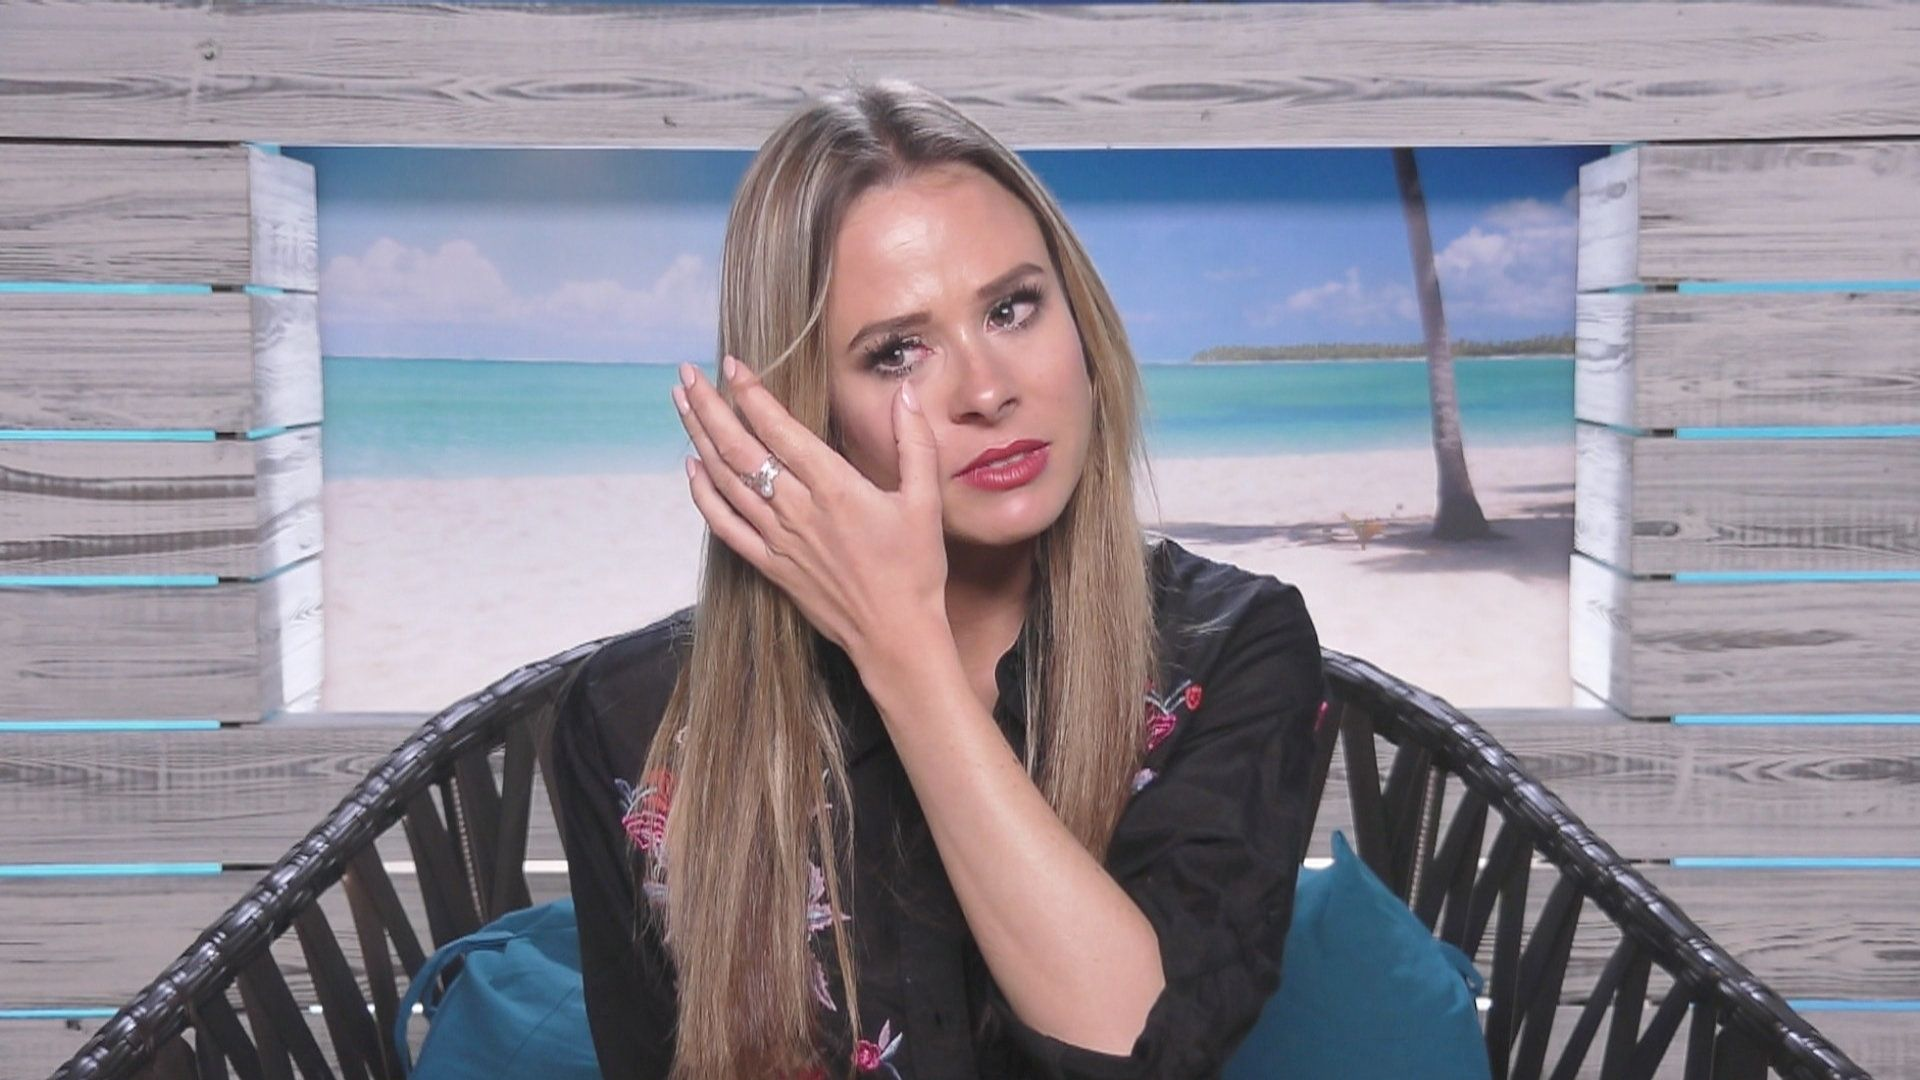 Love Island's Camilla Thurlow Reveals The Real Pain Jonny Caused Her In The